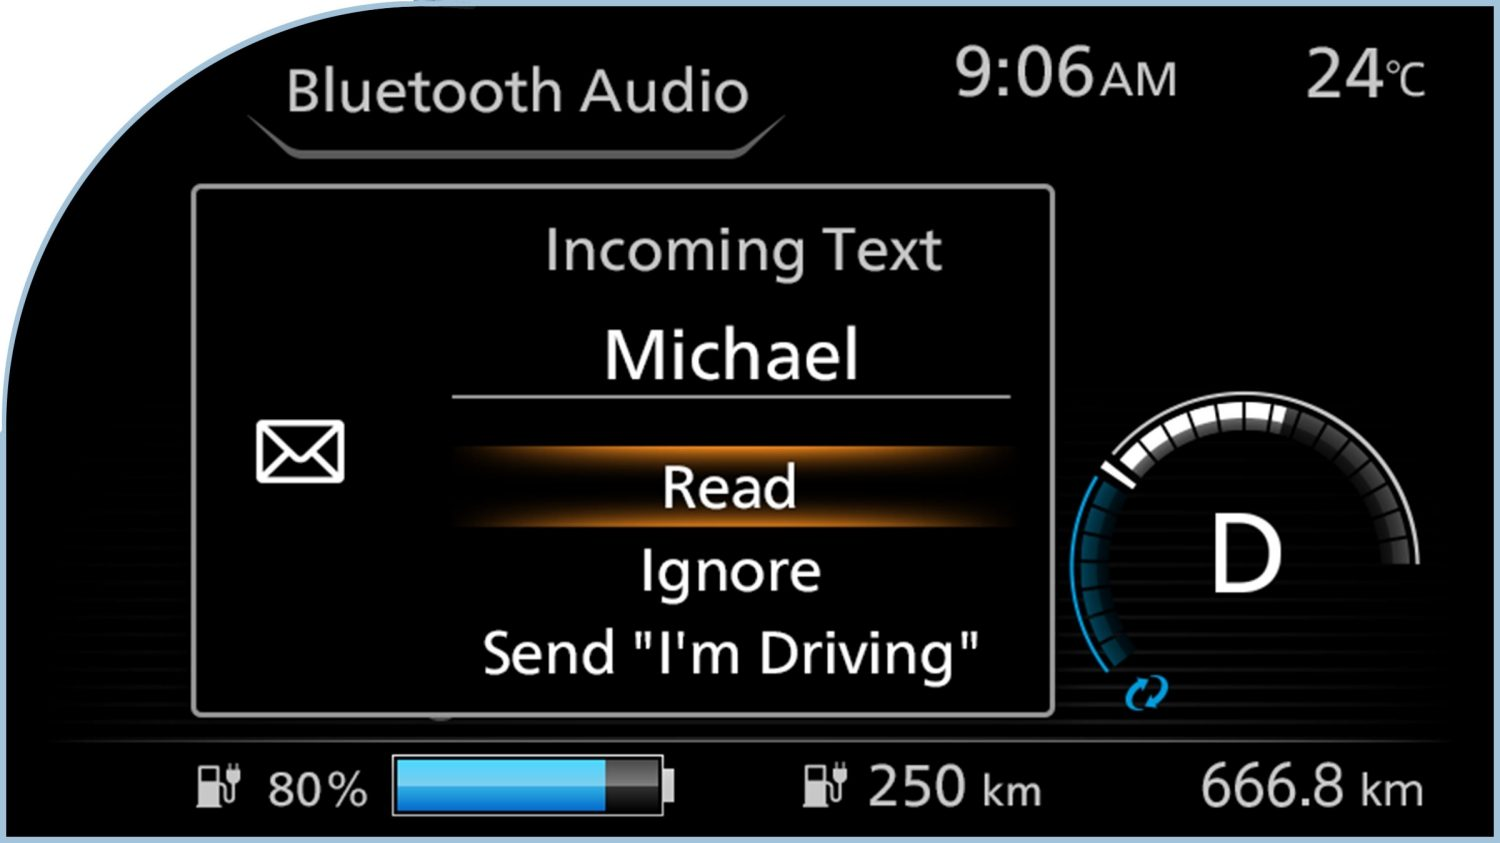 Nissan LEAF digital information display showing caller ID